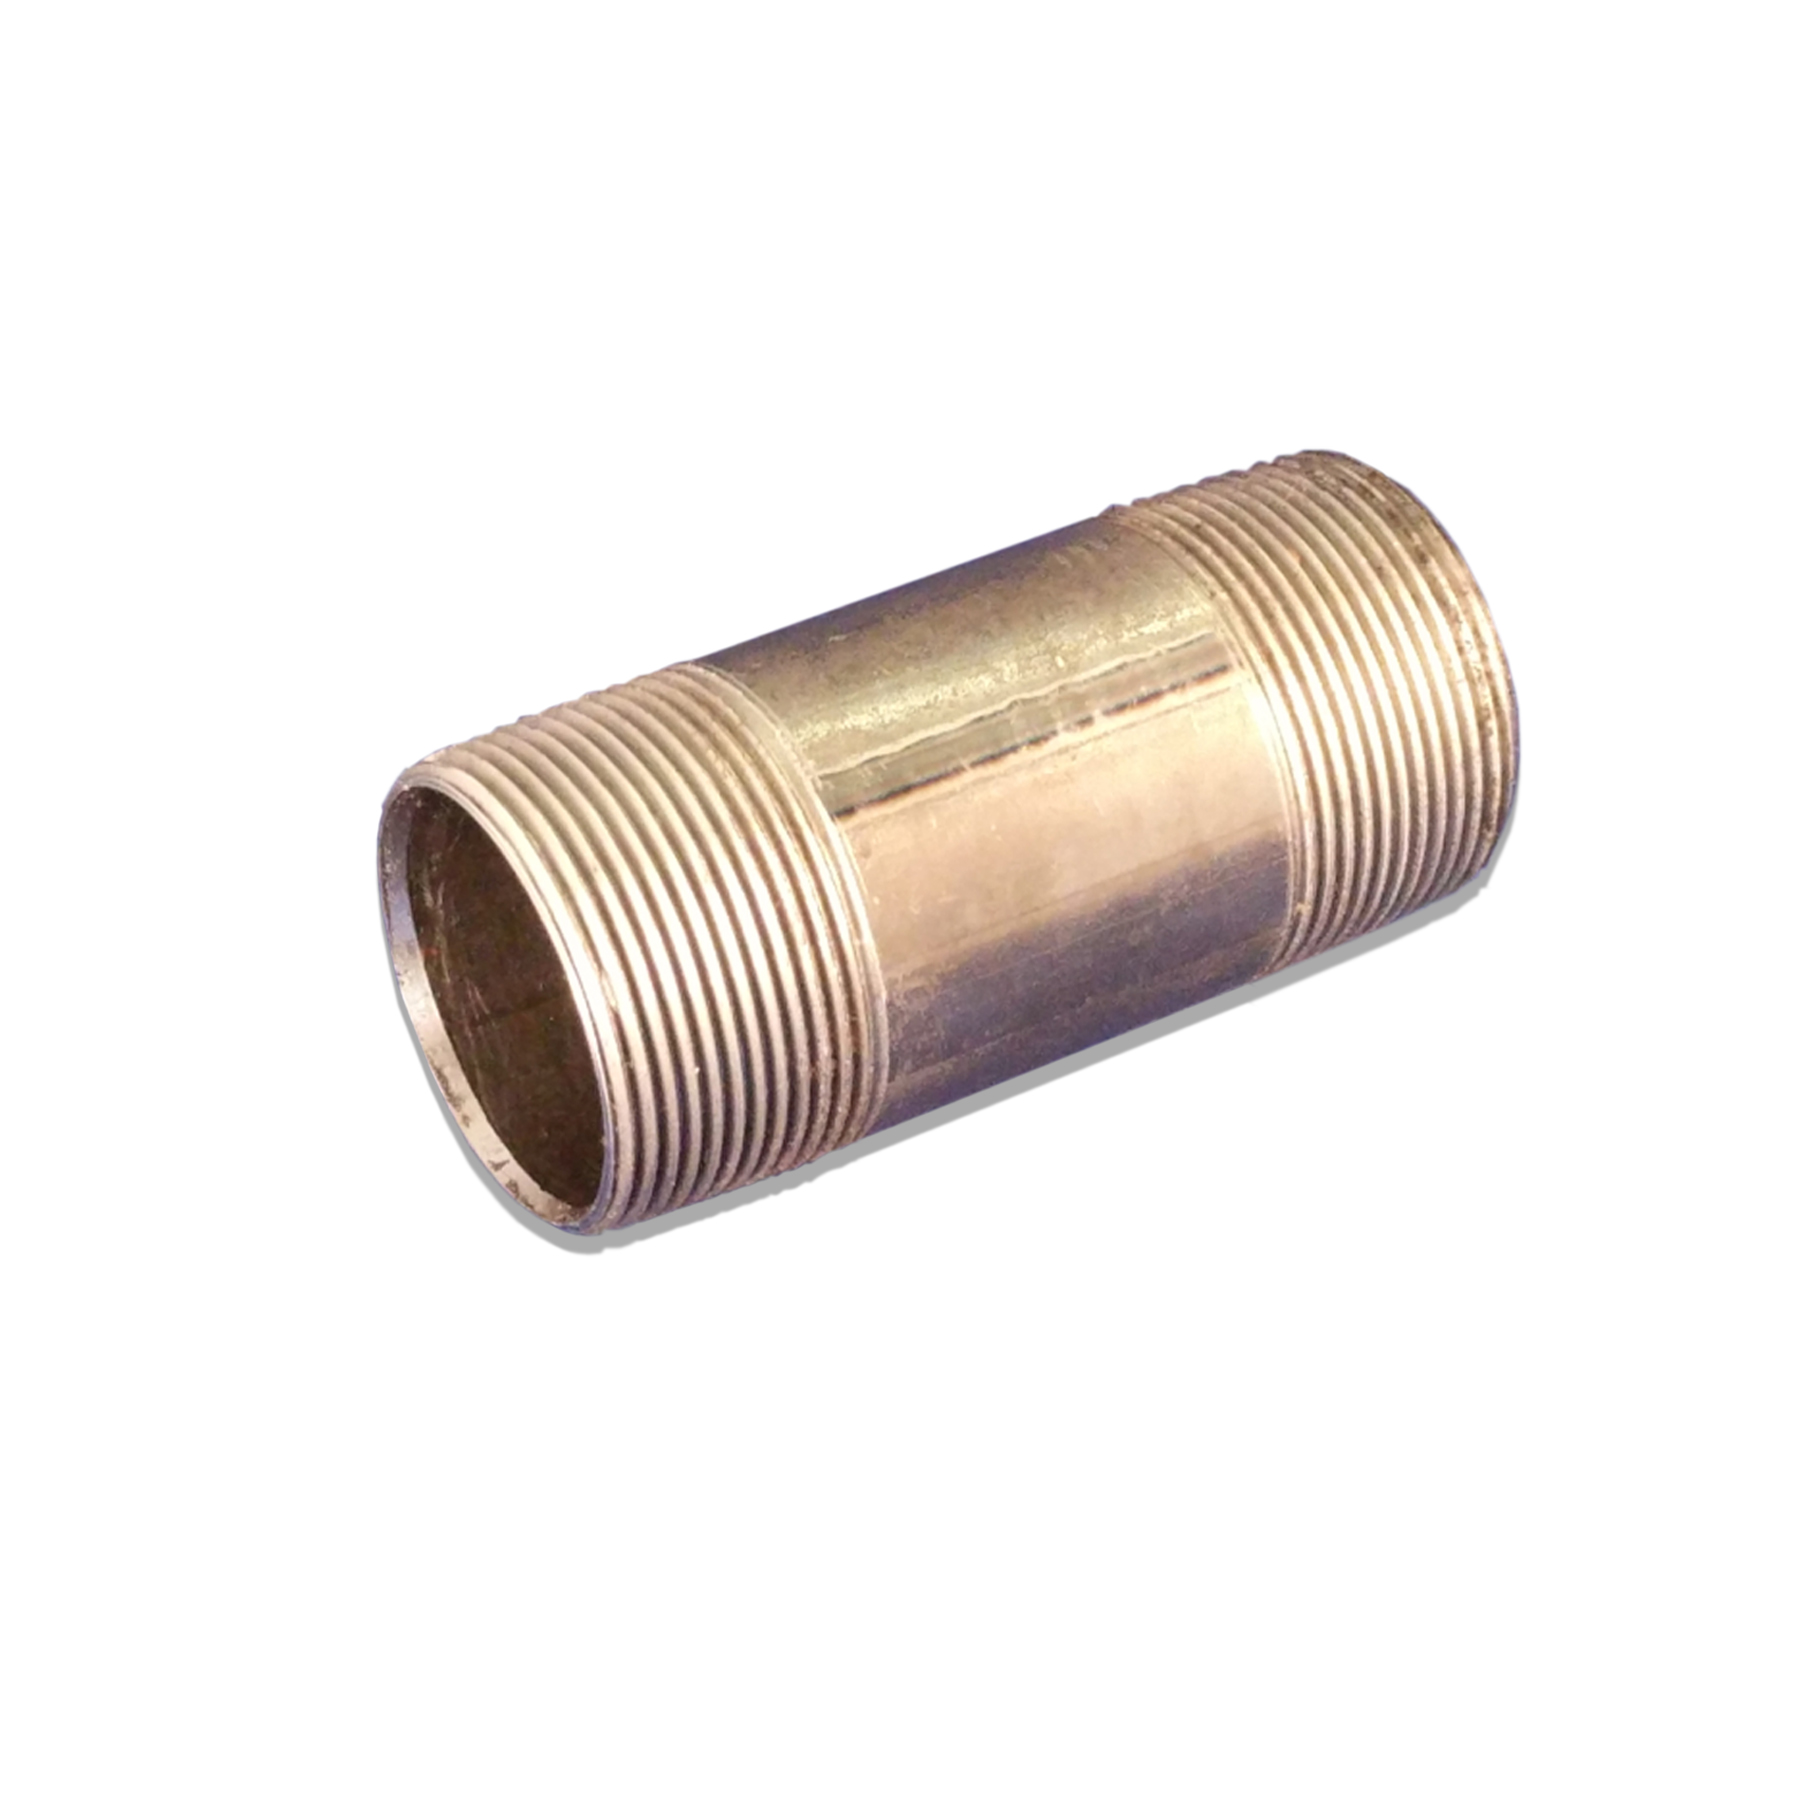 Pipe Nipple Exhaust Fitting, 1-1/2 in. (M) NPT x 4 in.